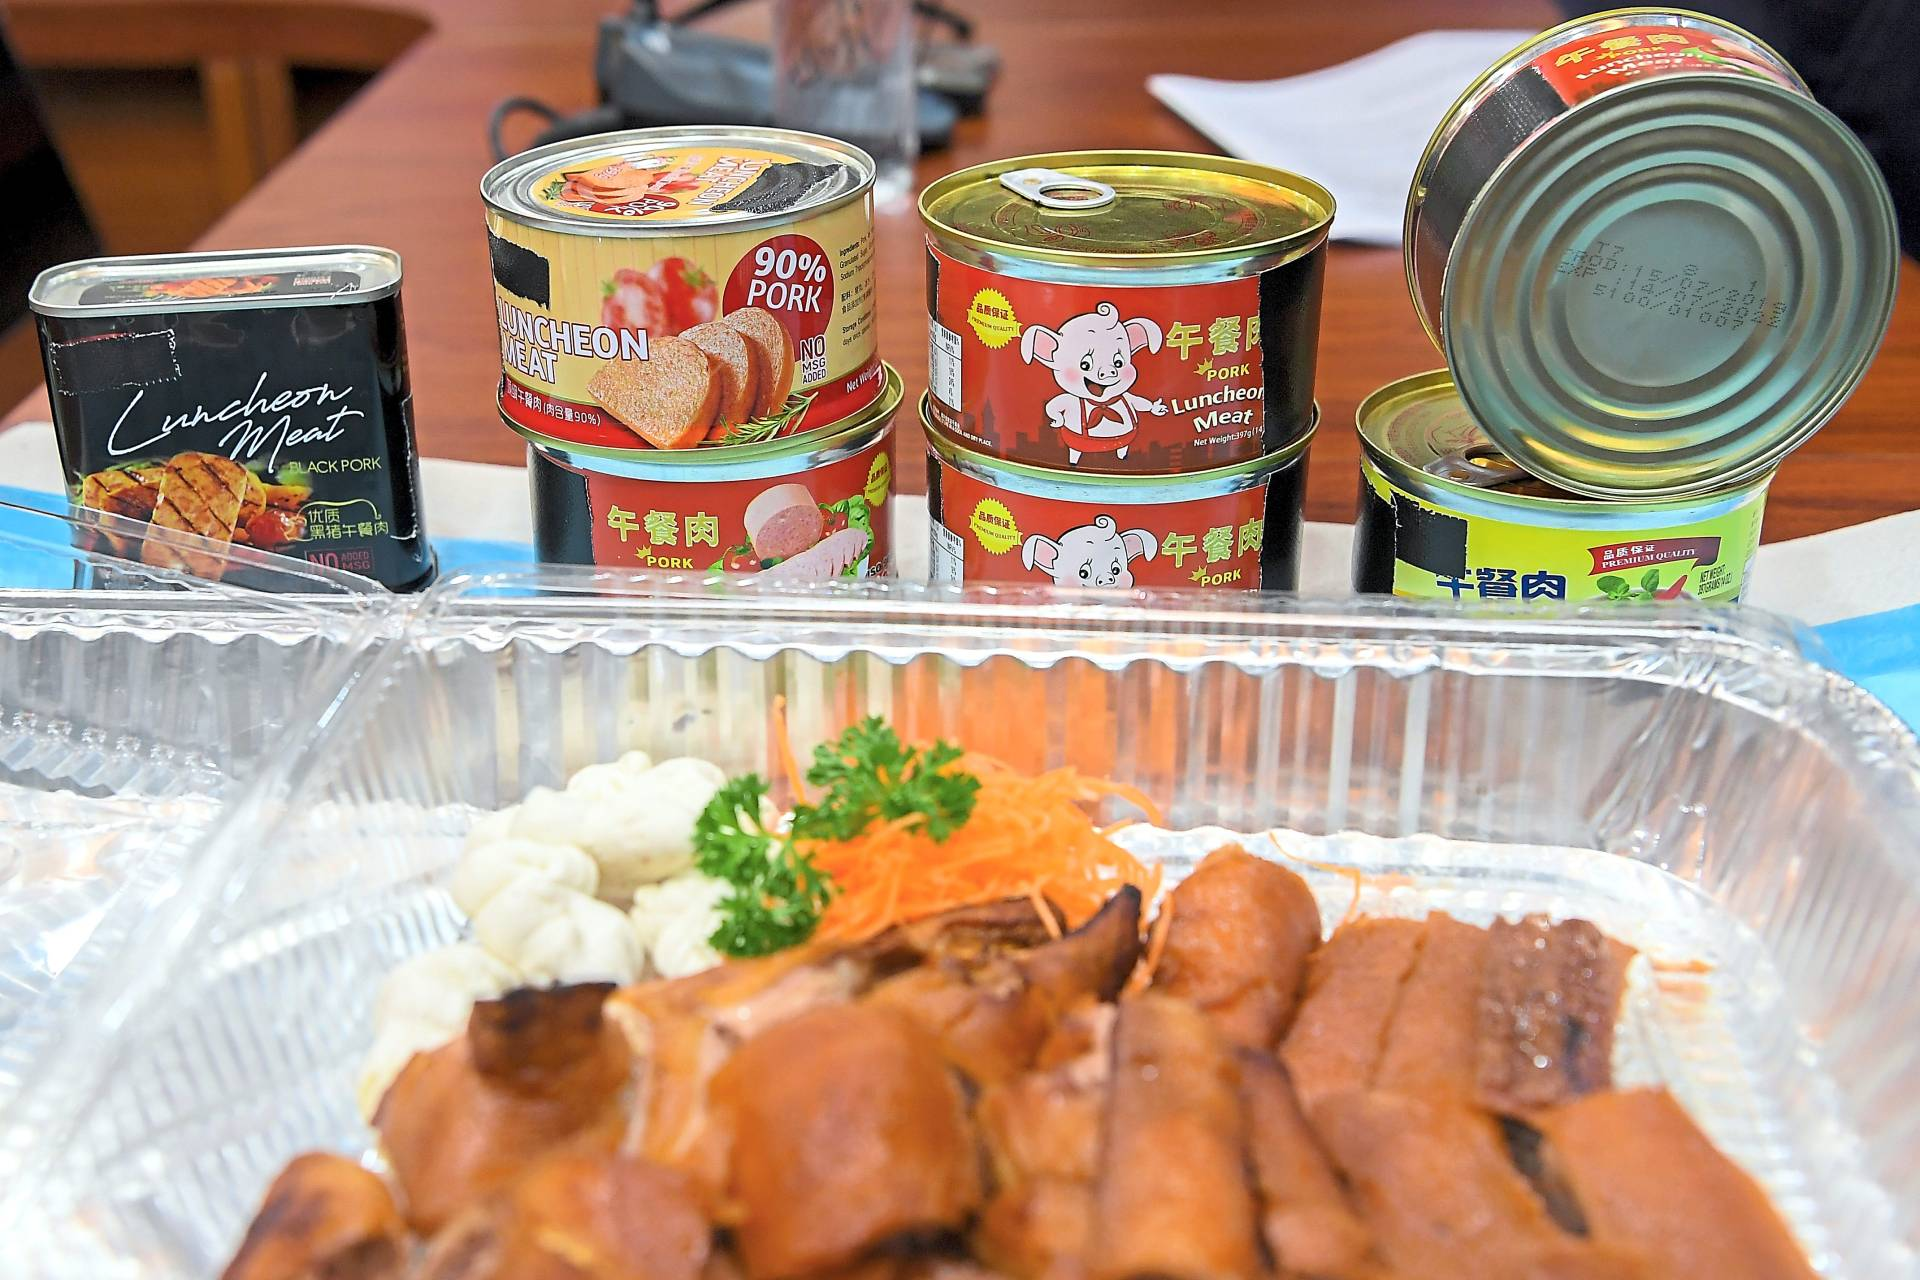 Some of the pork luncheon meat products seized after Sarawak declared a ban on such products imported from China recently. — Filepic